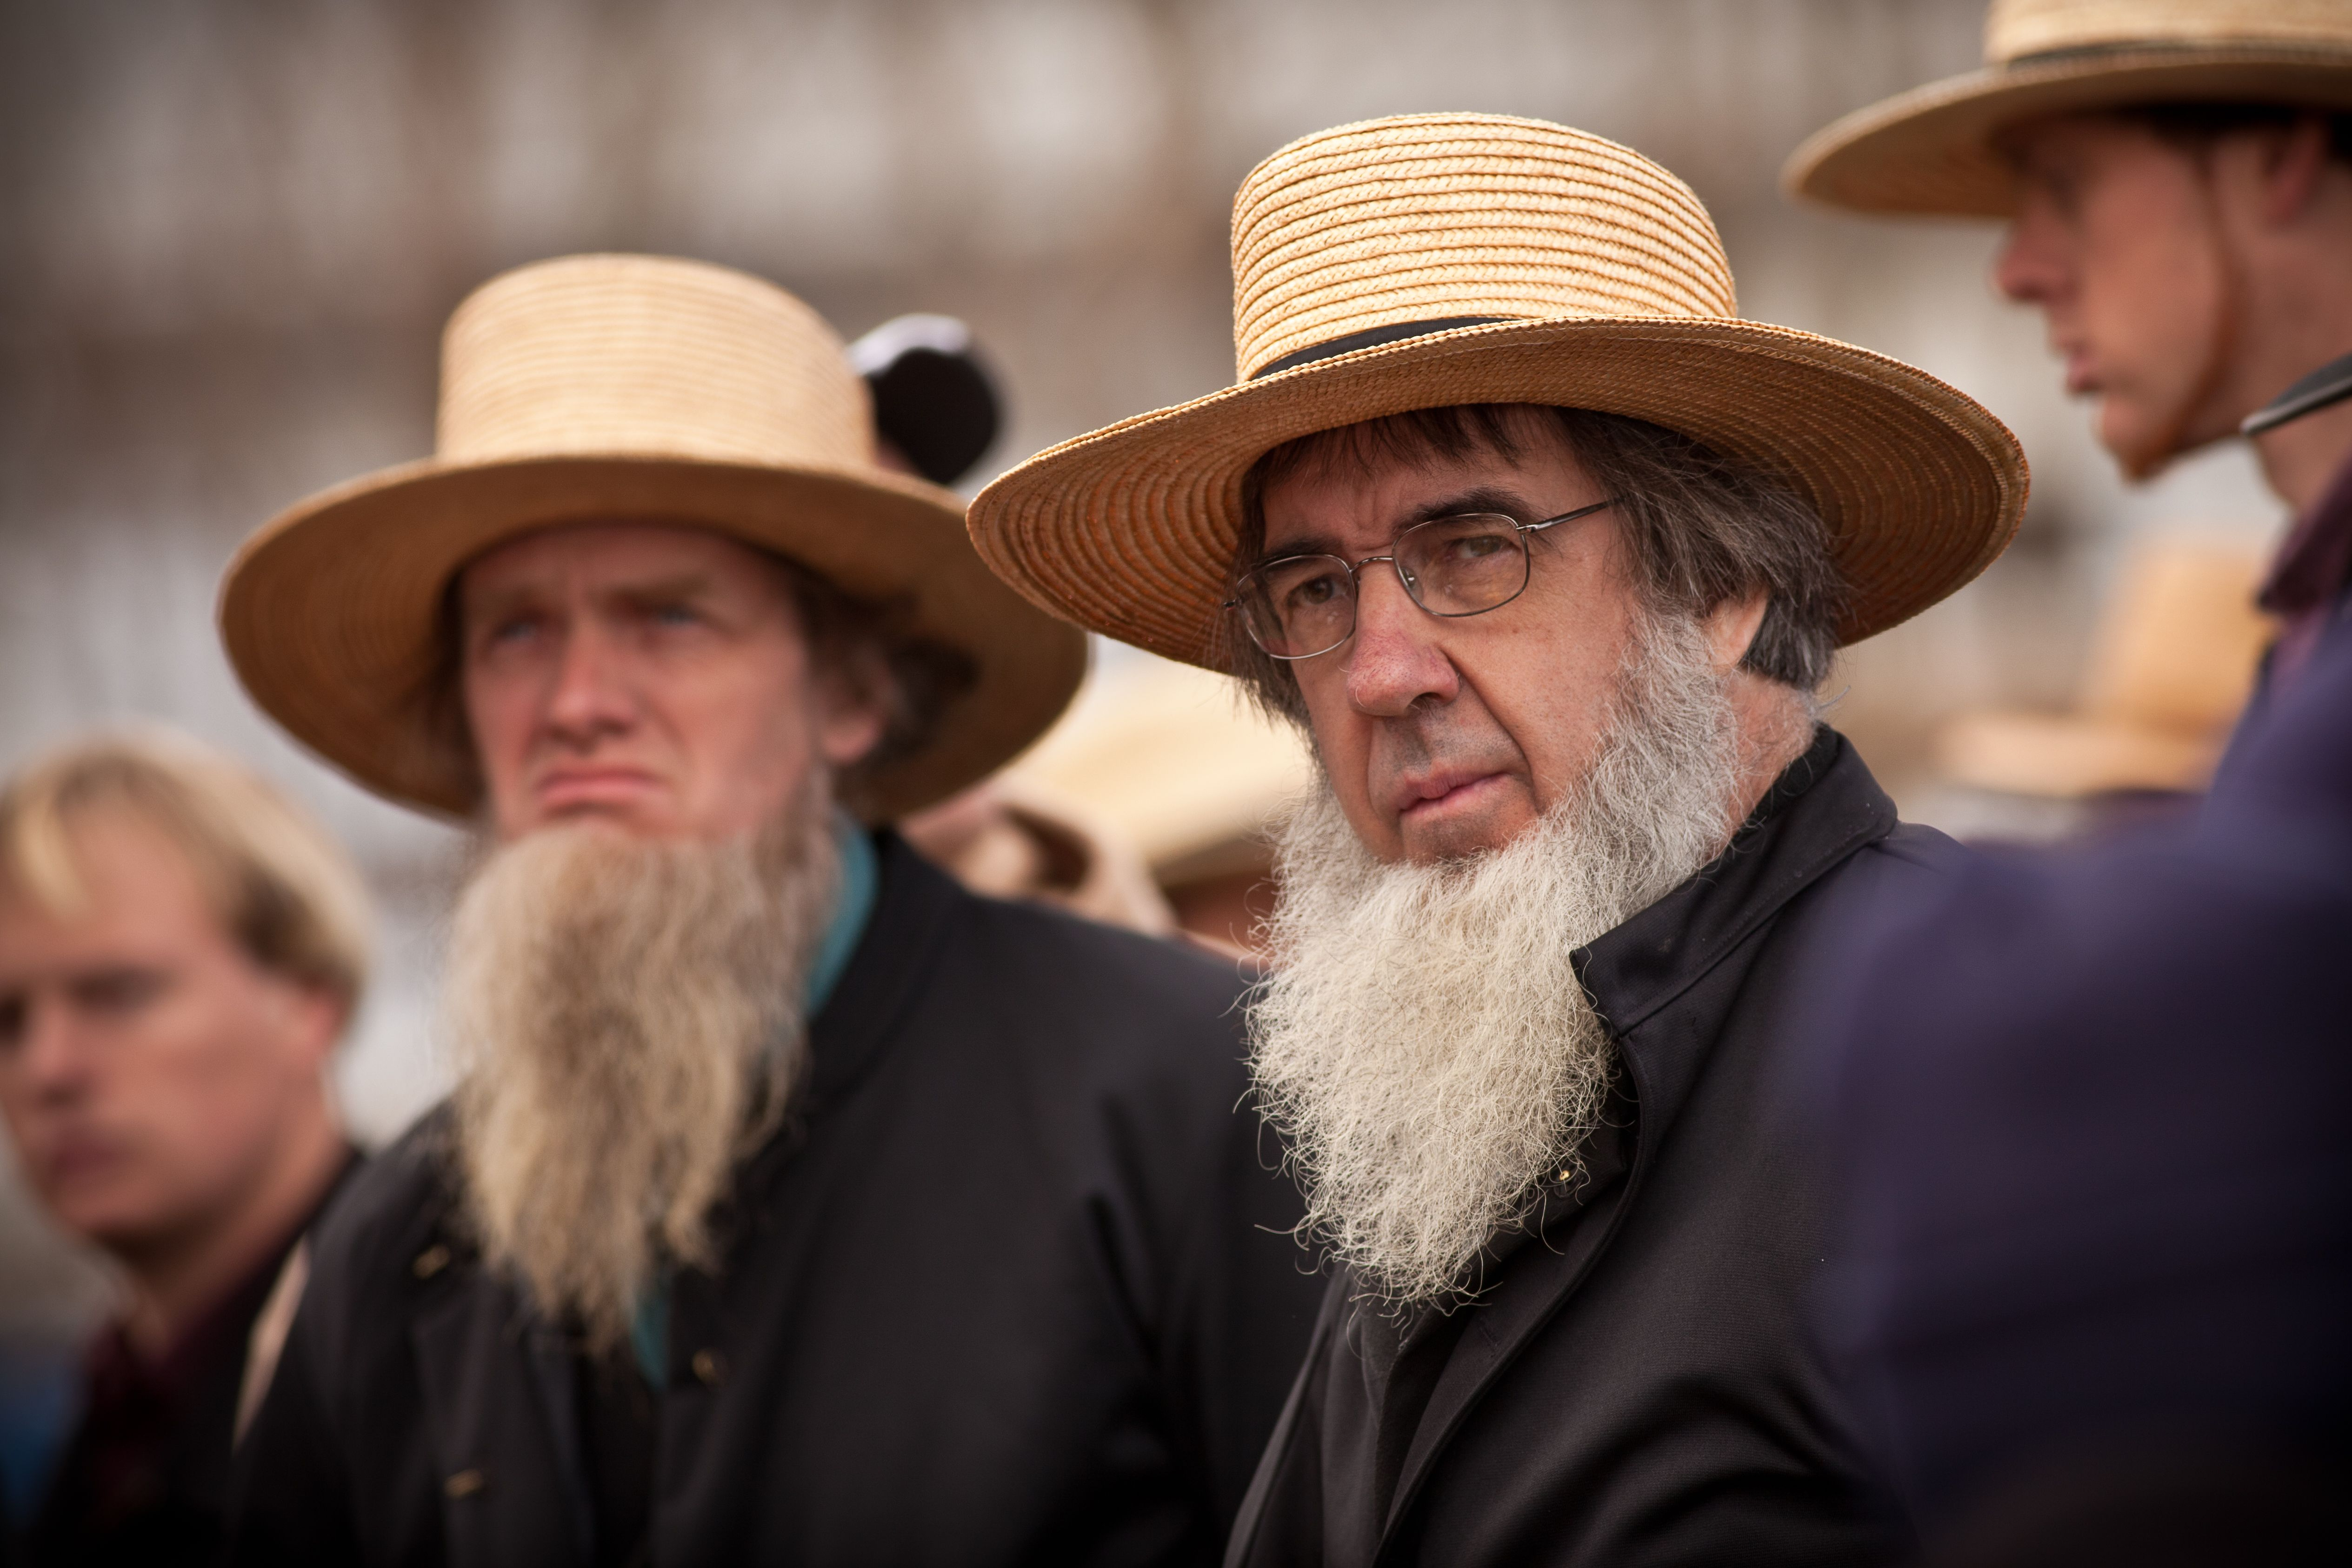 Defense Team Says Compassion Fueled Amish Beard Cutting